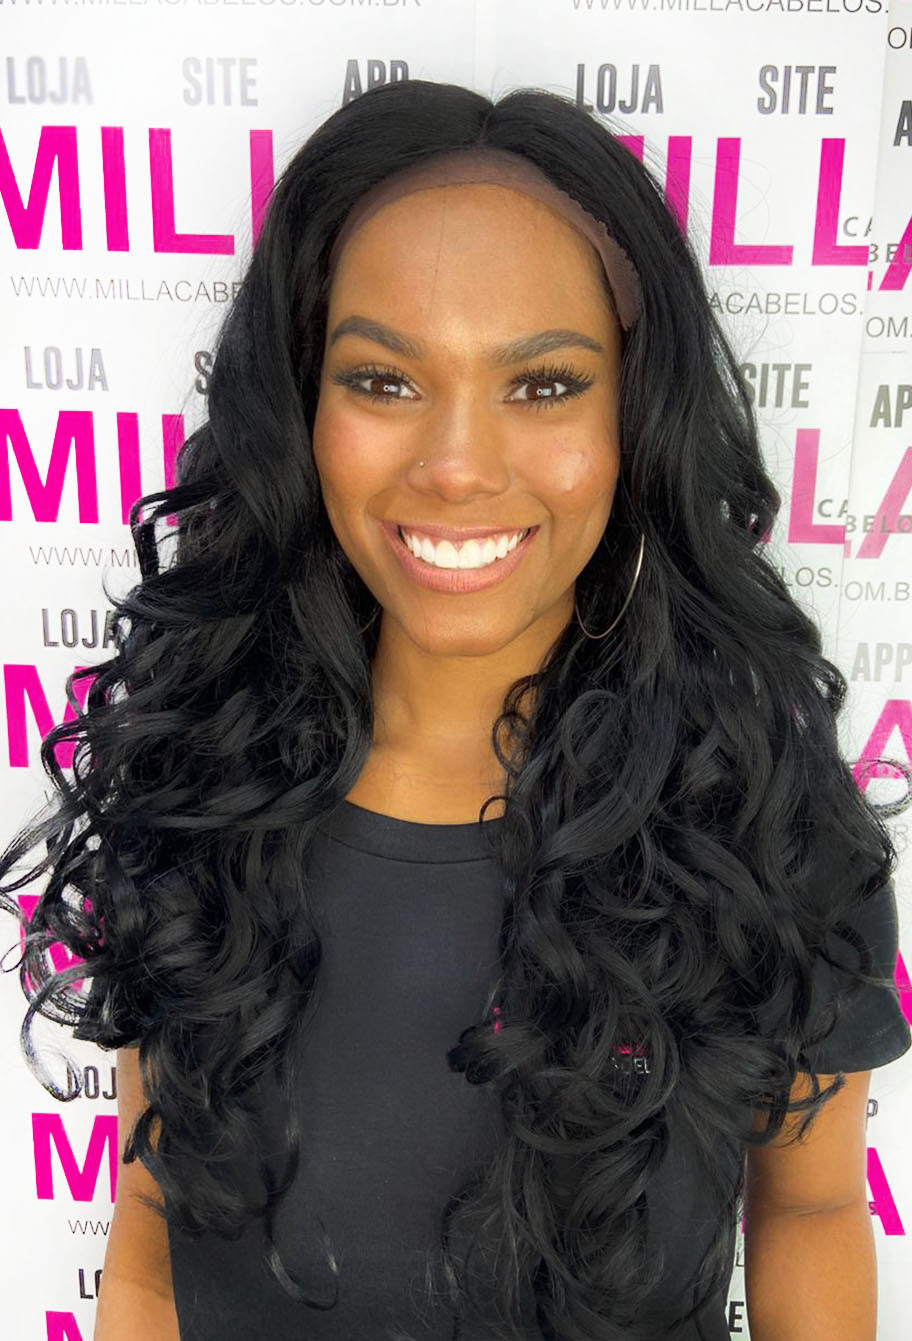 Peruca Orgânica - Front/Top Lace Sleek Wig Fashion - Star